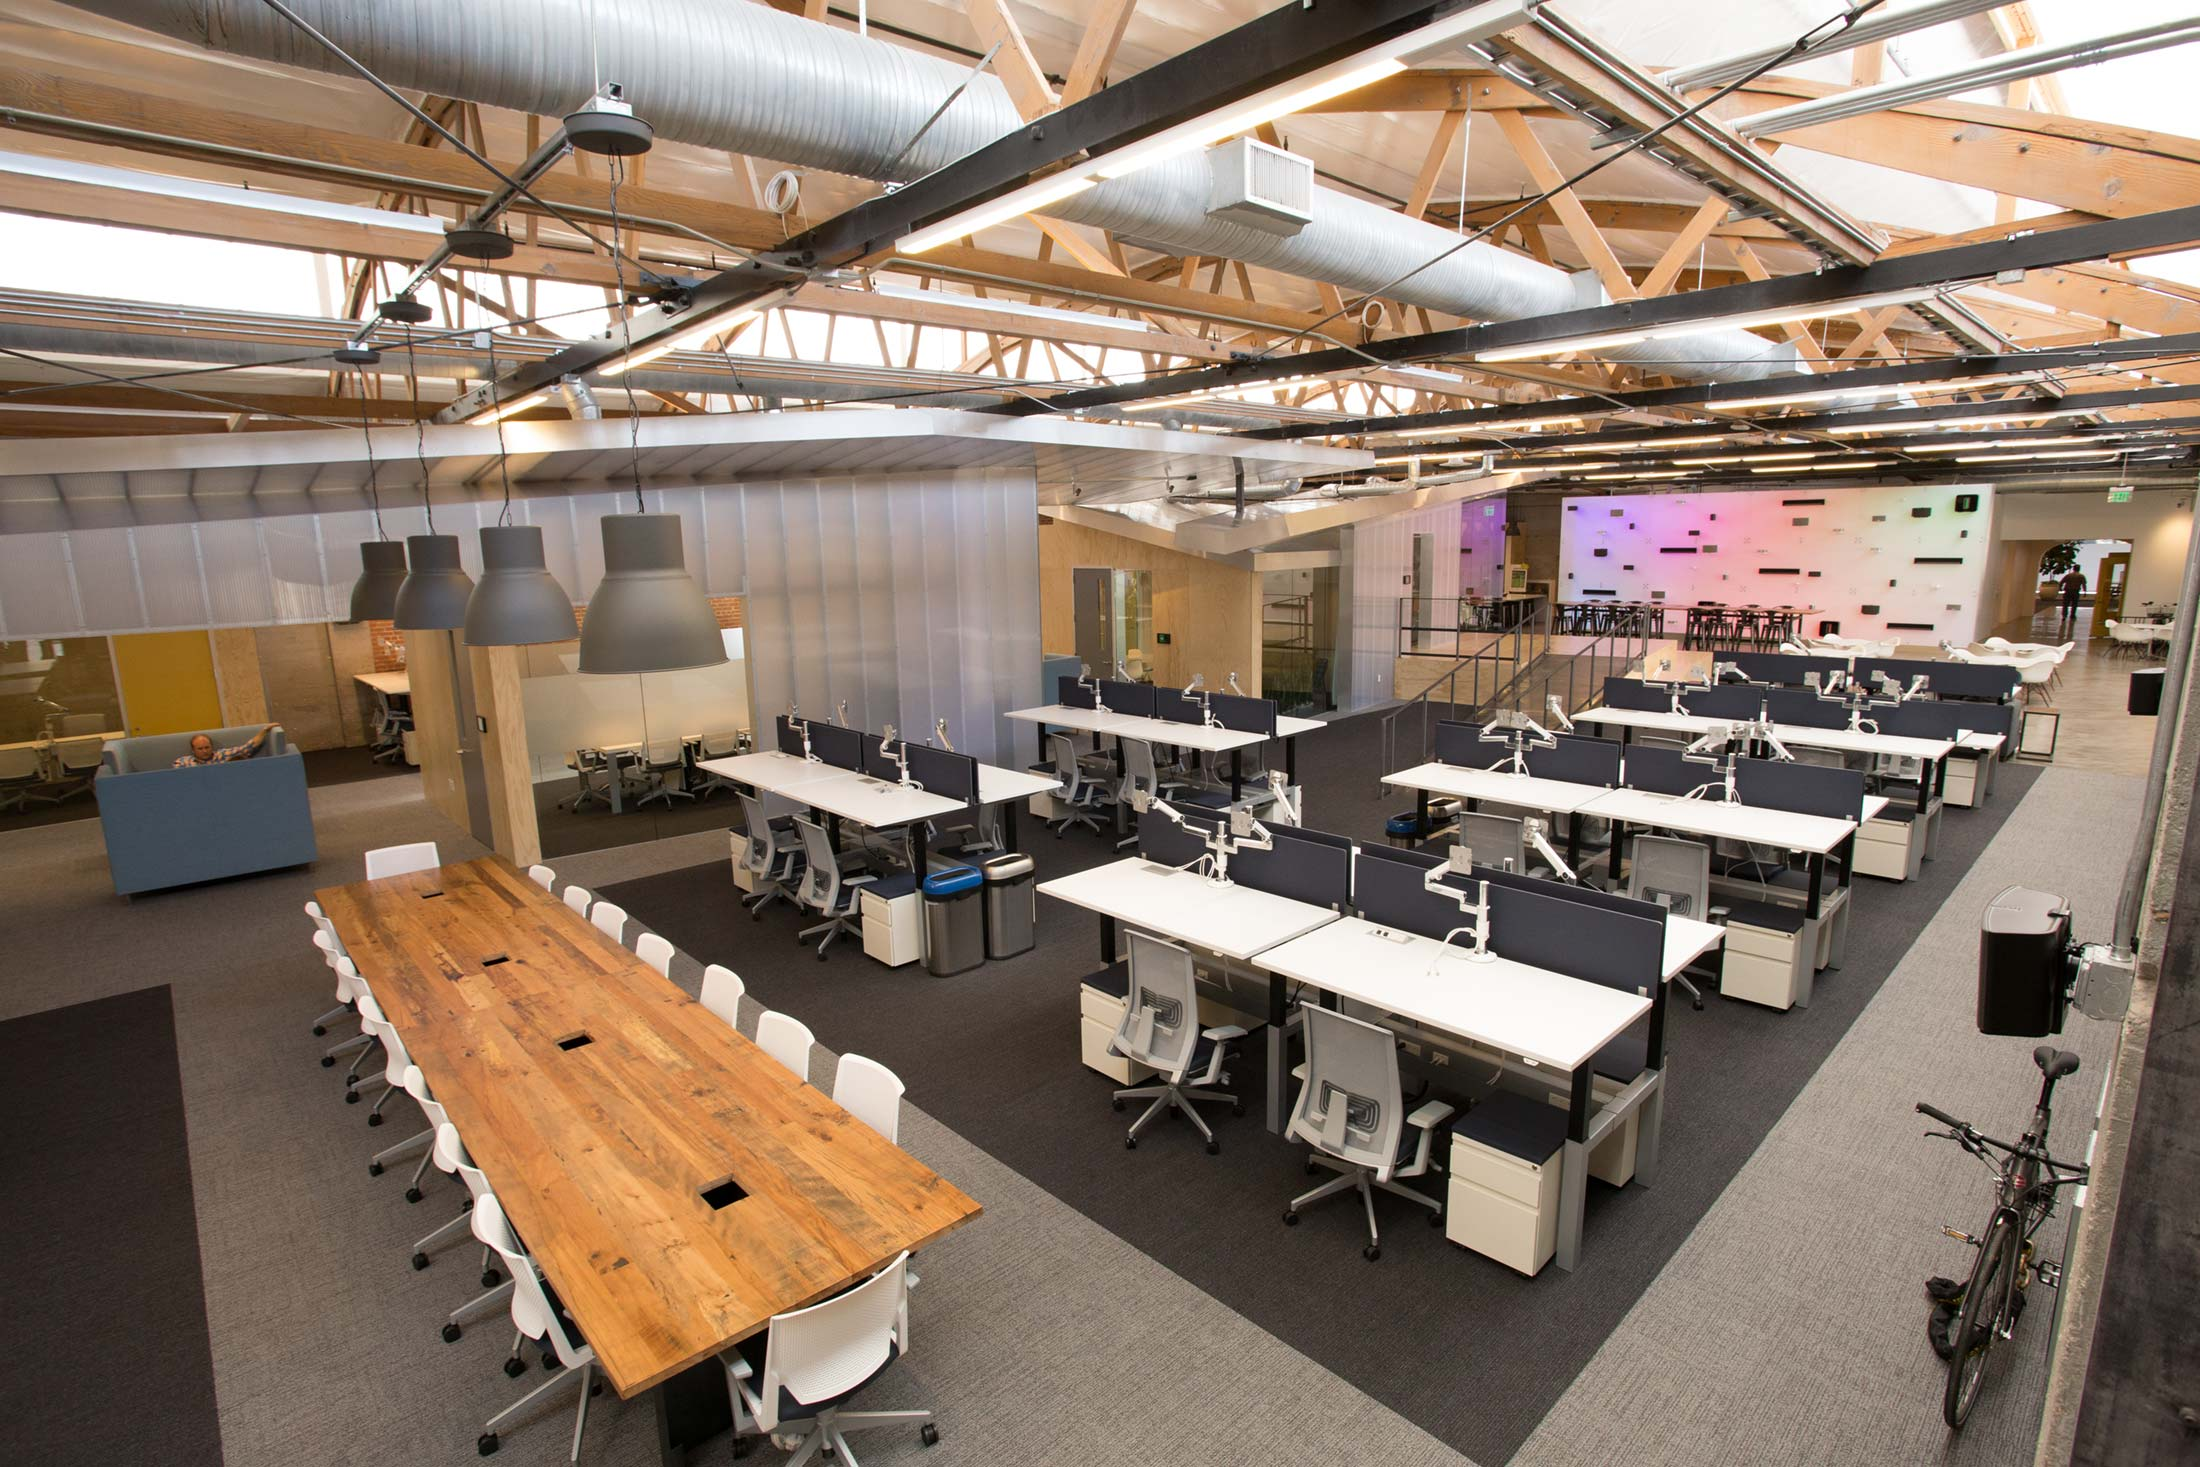 modern-architecture-commercial-interior-adaptive-reuse-workspace-california-shubindonaldson-sonos-12